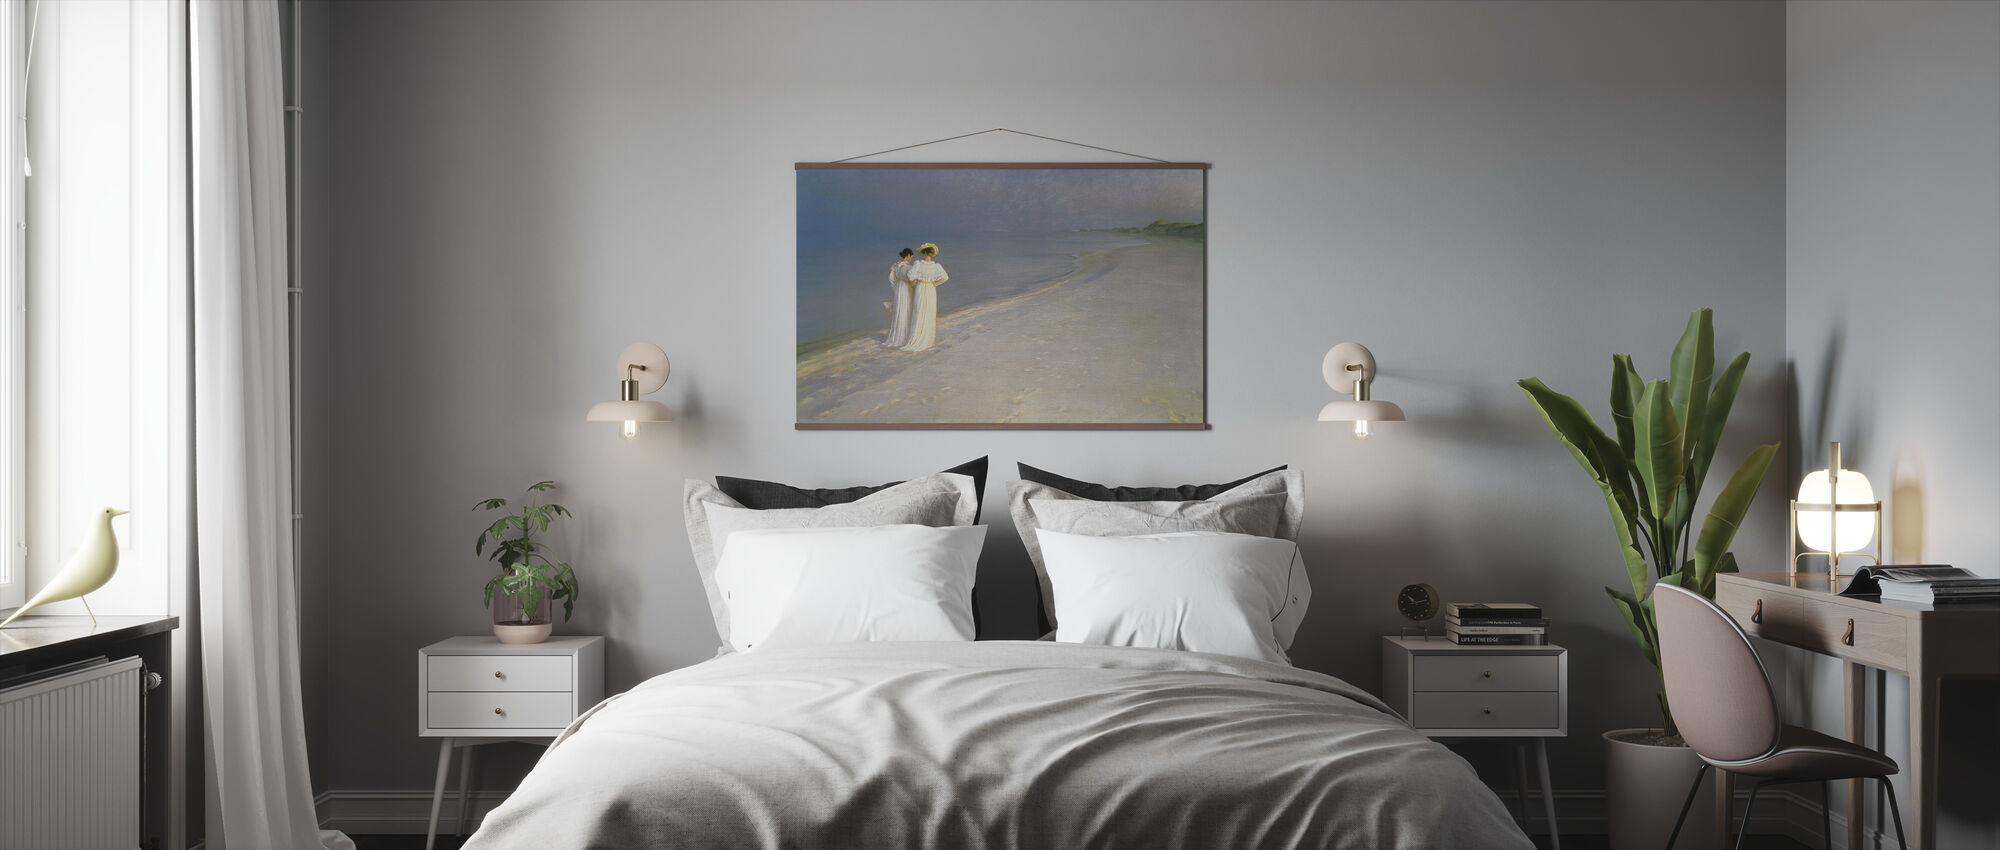 Summer Evening on the Skagen Southern Beach with Anna Ancher and Marie Kroyer - Peder Severin Kroyer - Poster - Bedroom